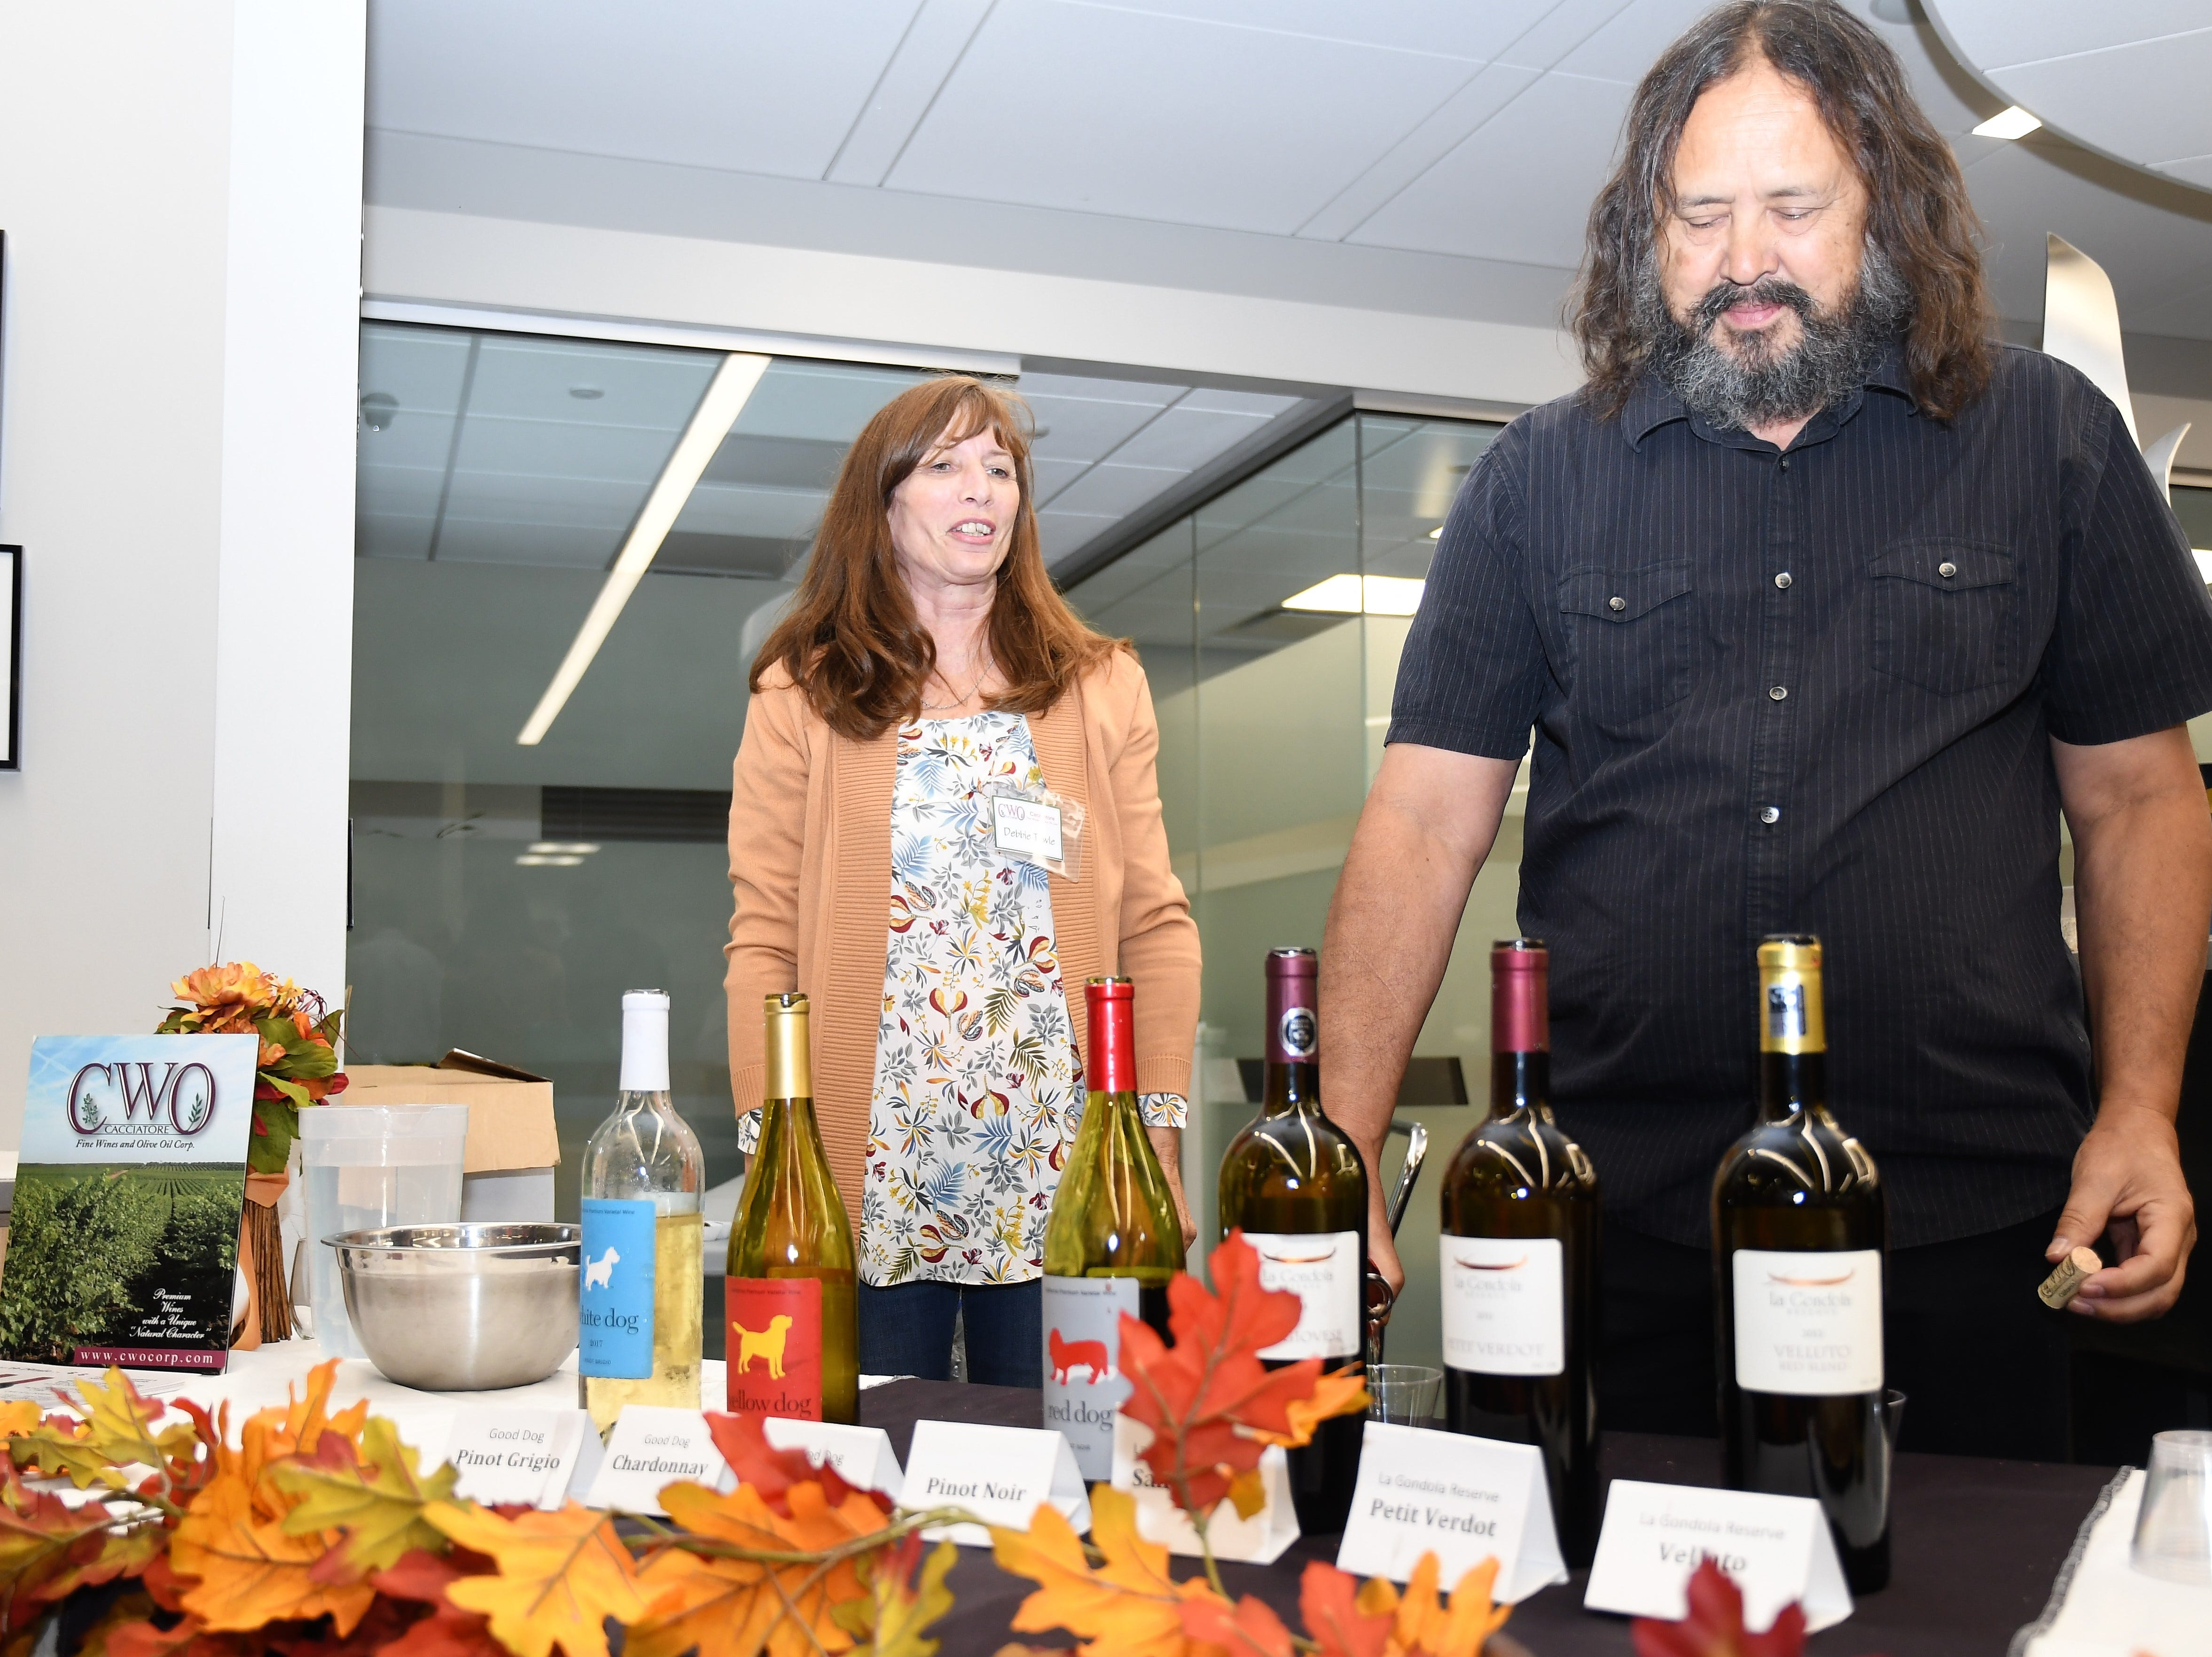 Cacciatore Fine Wines & Olive Oil Corp. brought their collection of wines to Taste of Downtown - all grown and processed in Lindsay, CA.